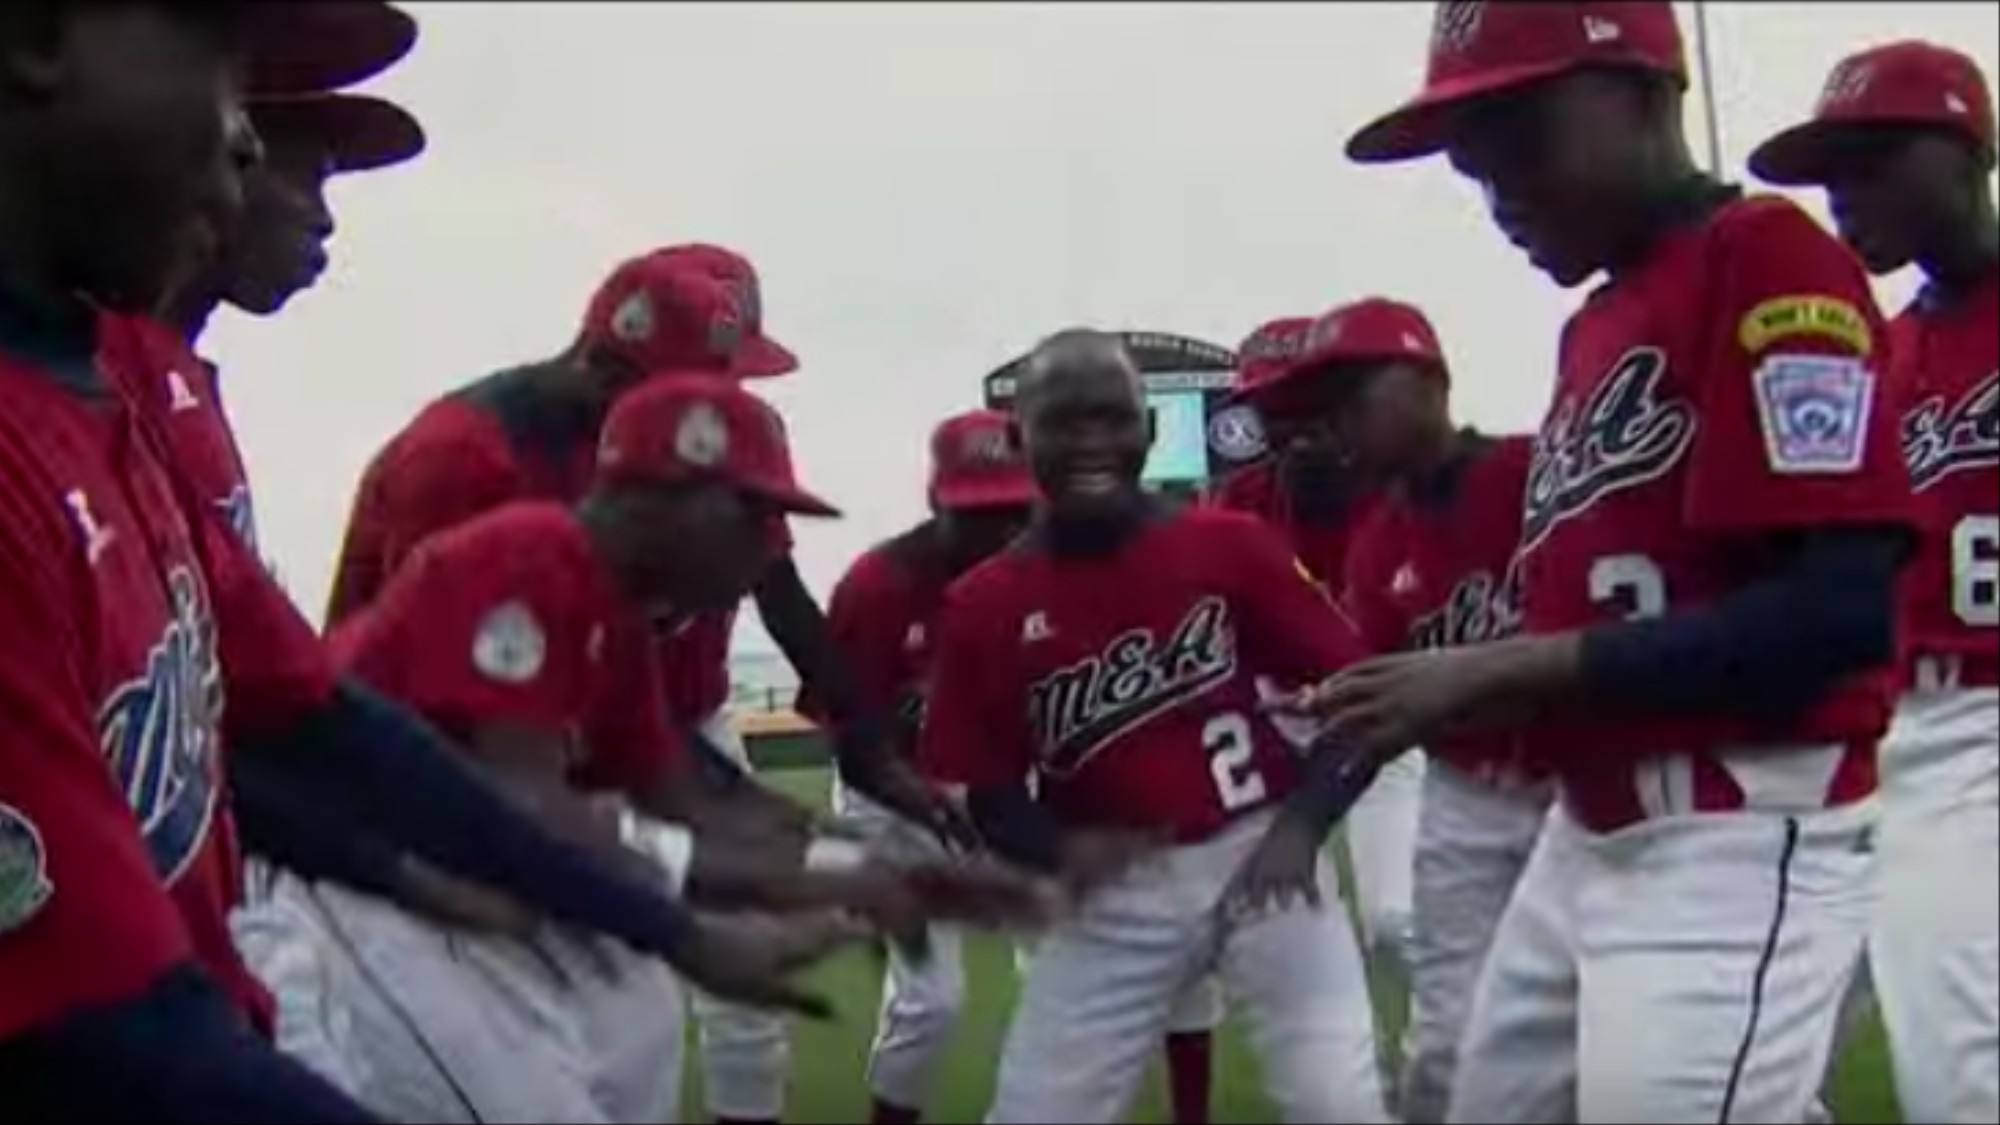 Does Little League Baseball Make it Difficult for African